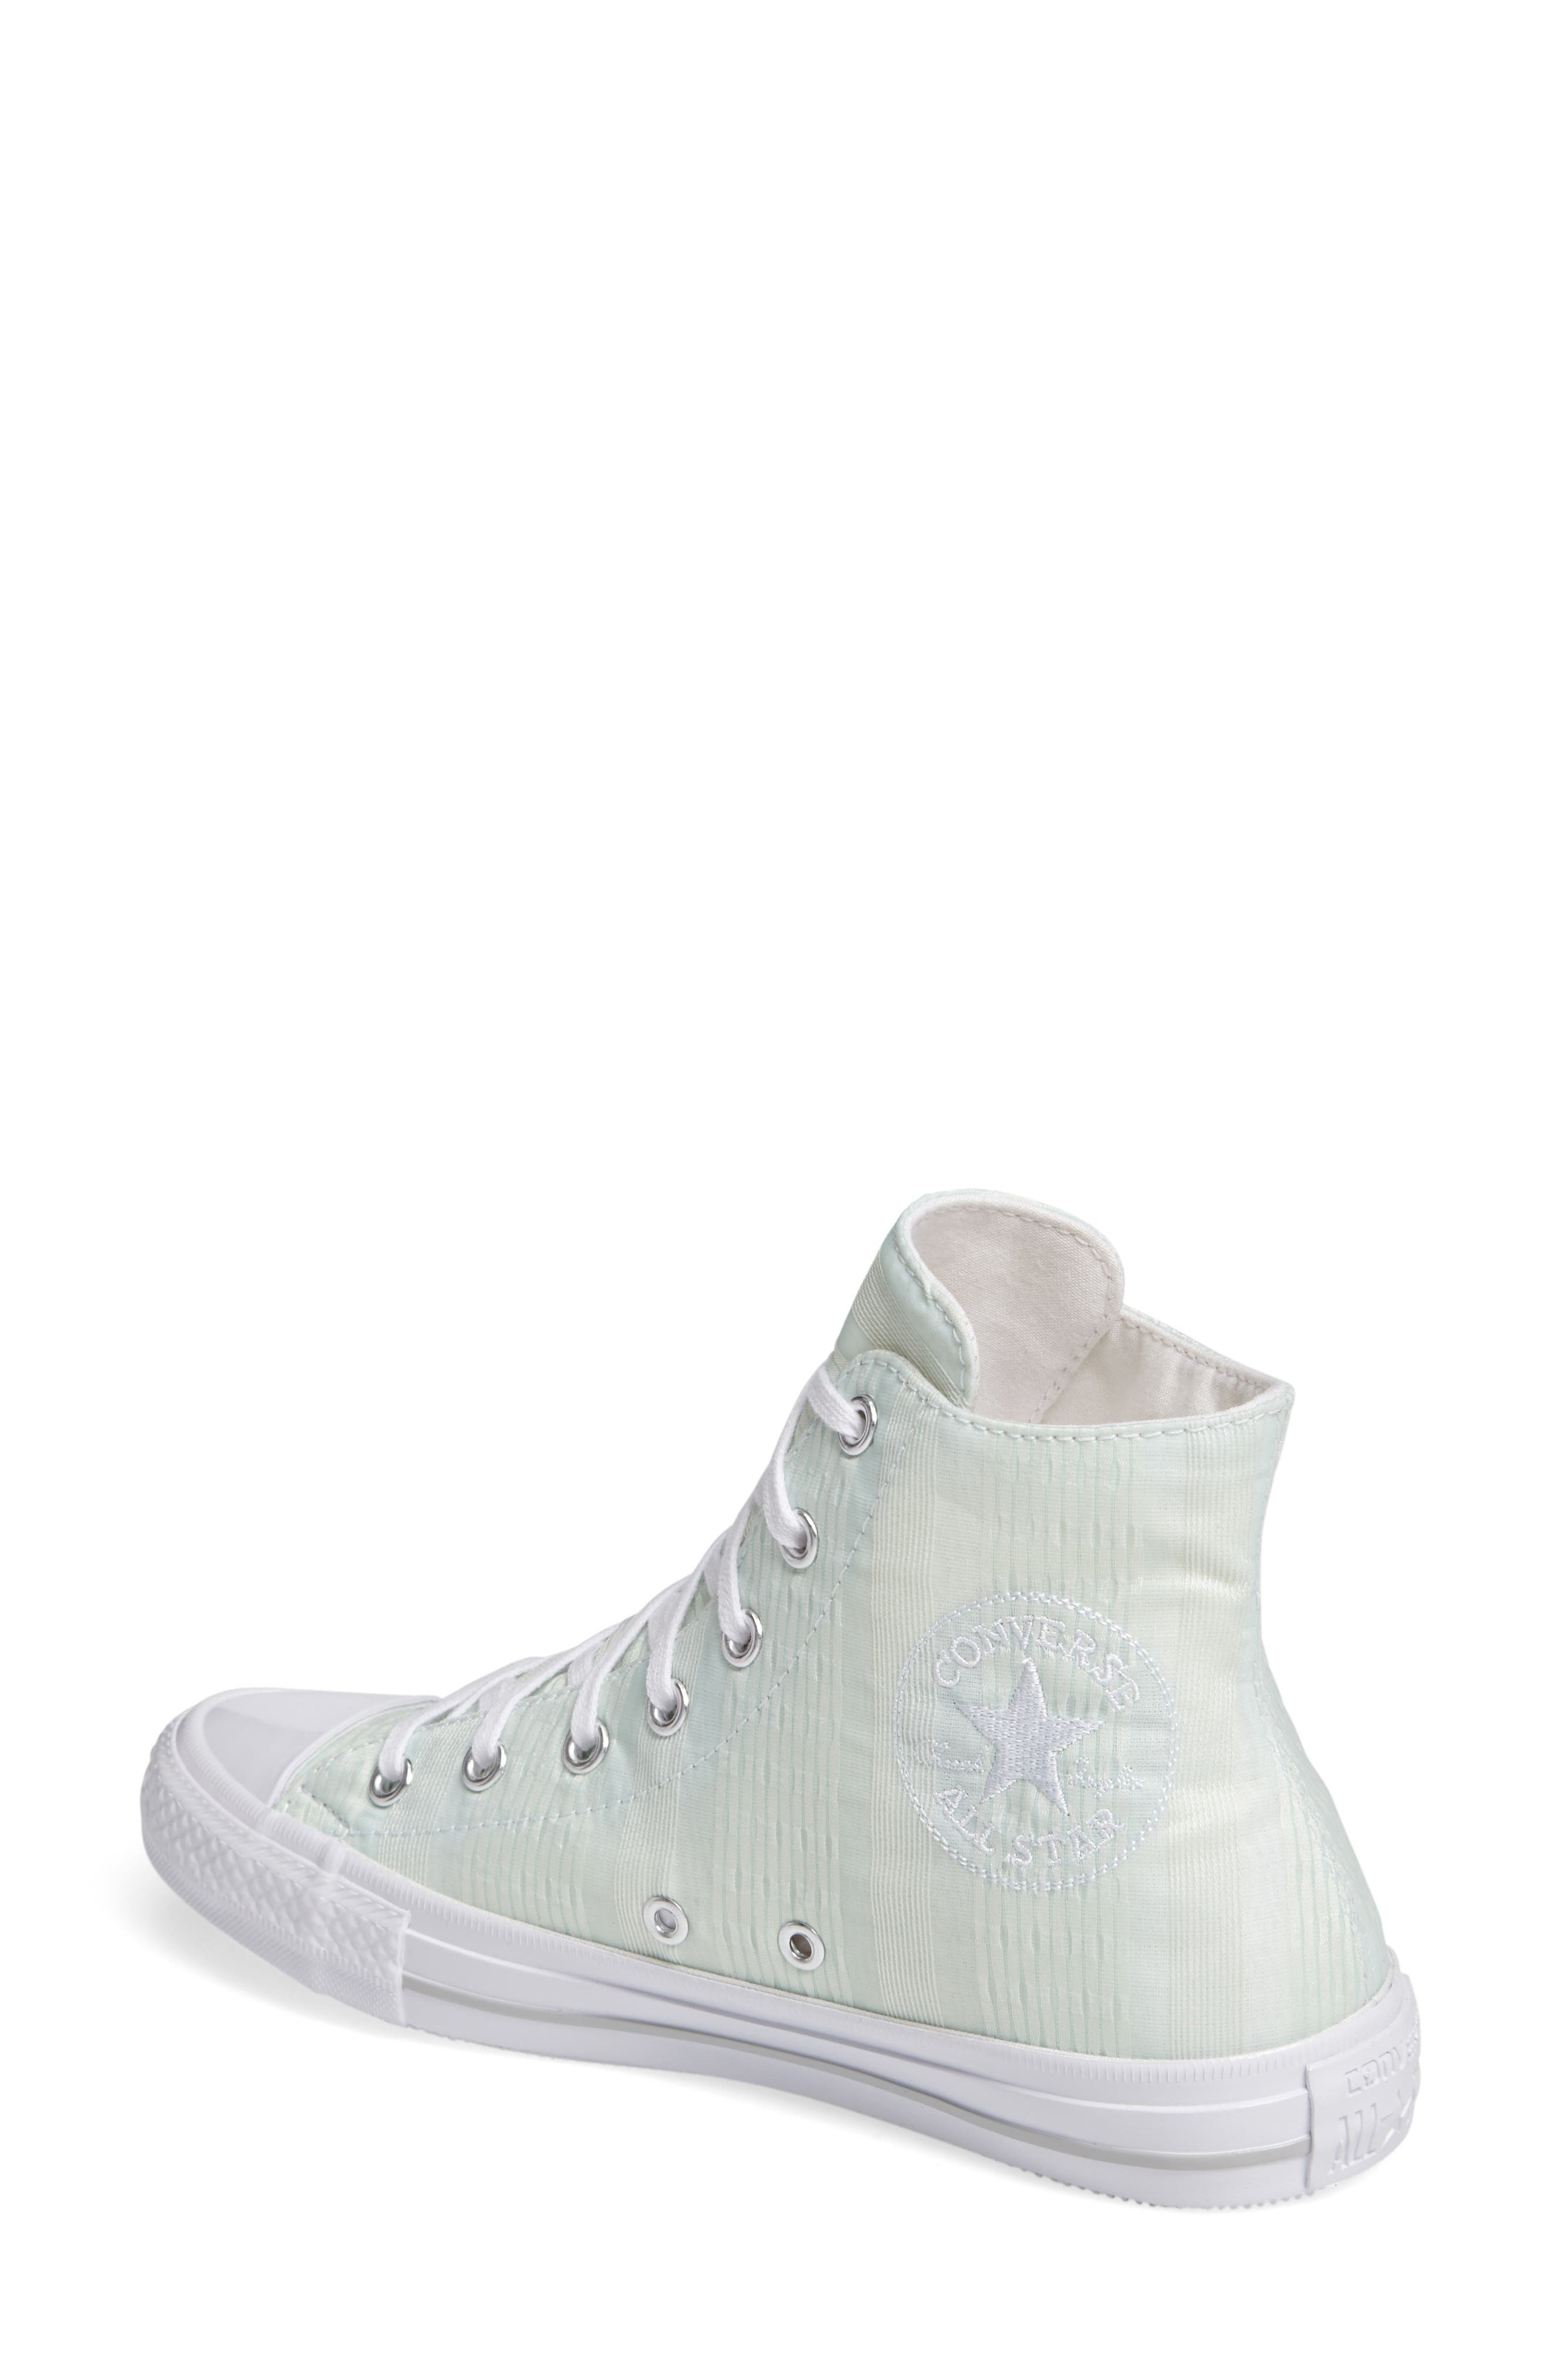 Alternate Image 2  - Converse Chuck Taylor® All Star® Gemma High Top Sneaker (Women)